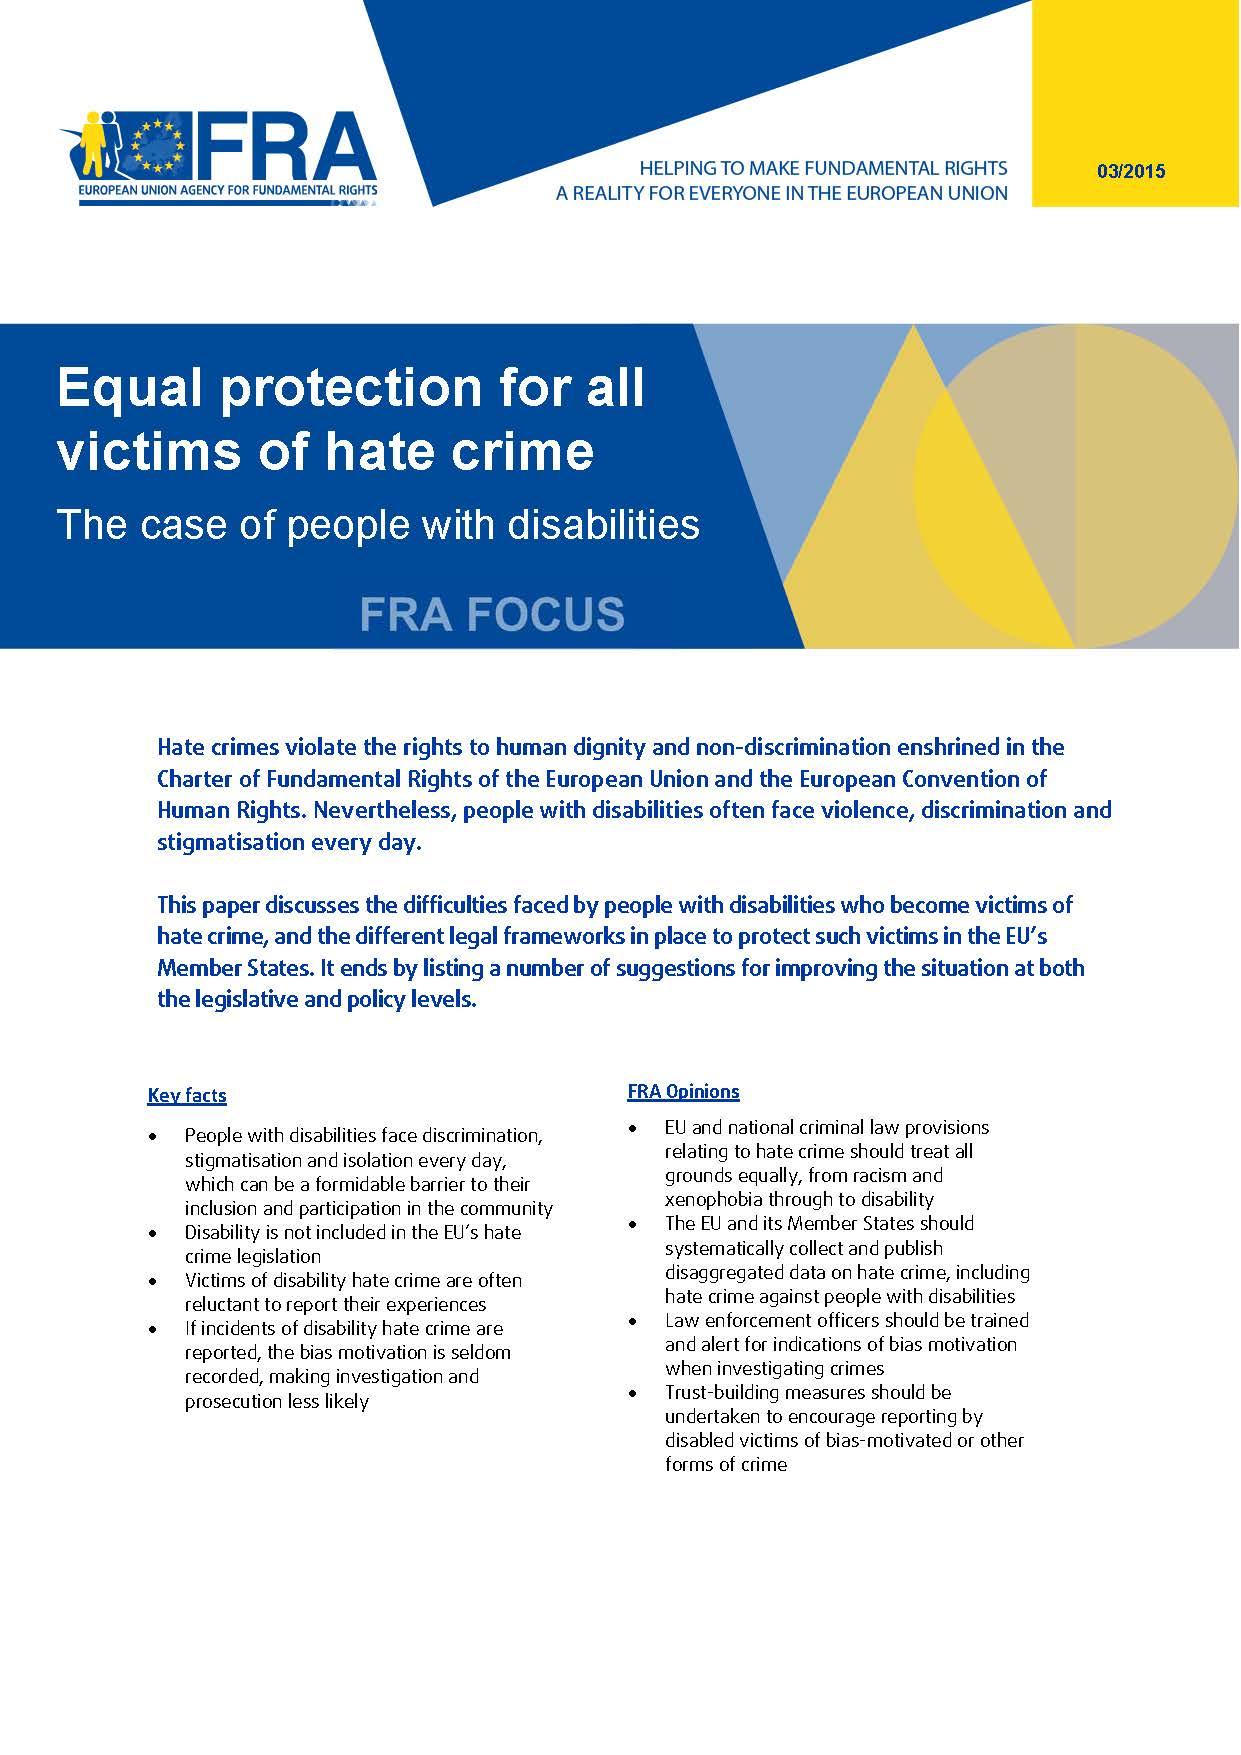 Equal protection for all victims of hate crime - The case of people with disabilities